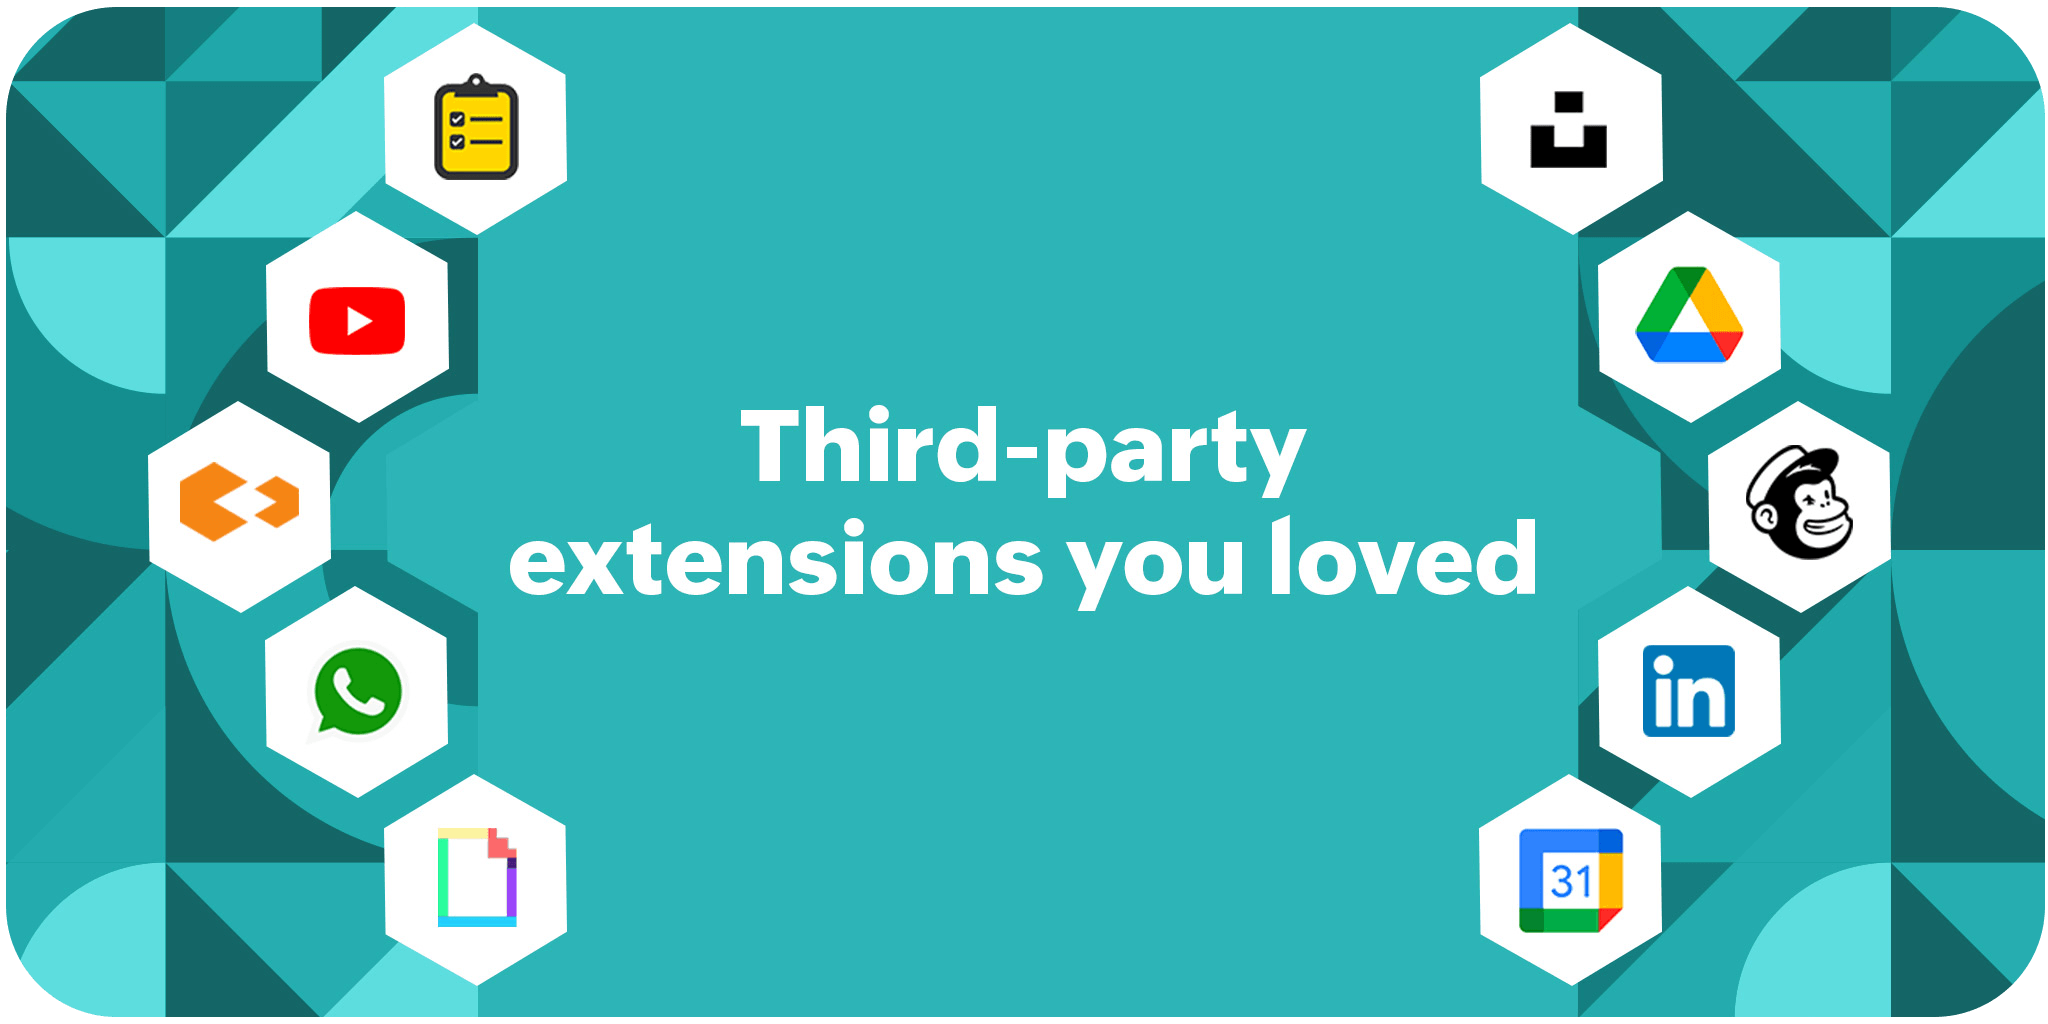 Most installed third-party extensions